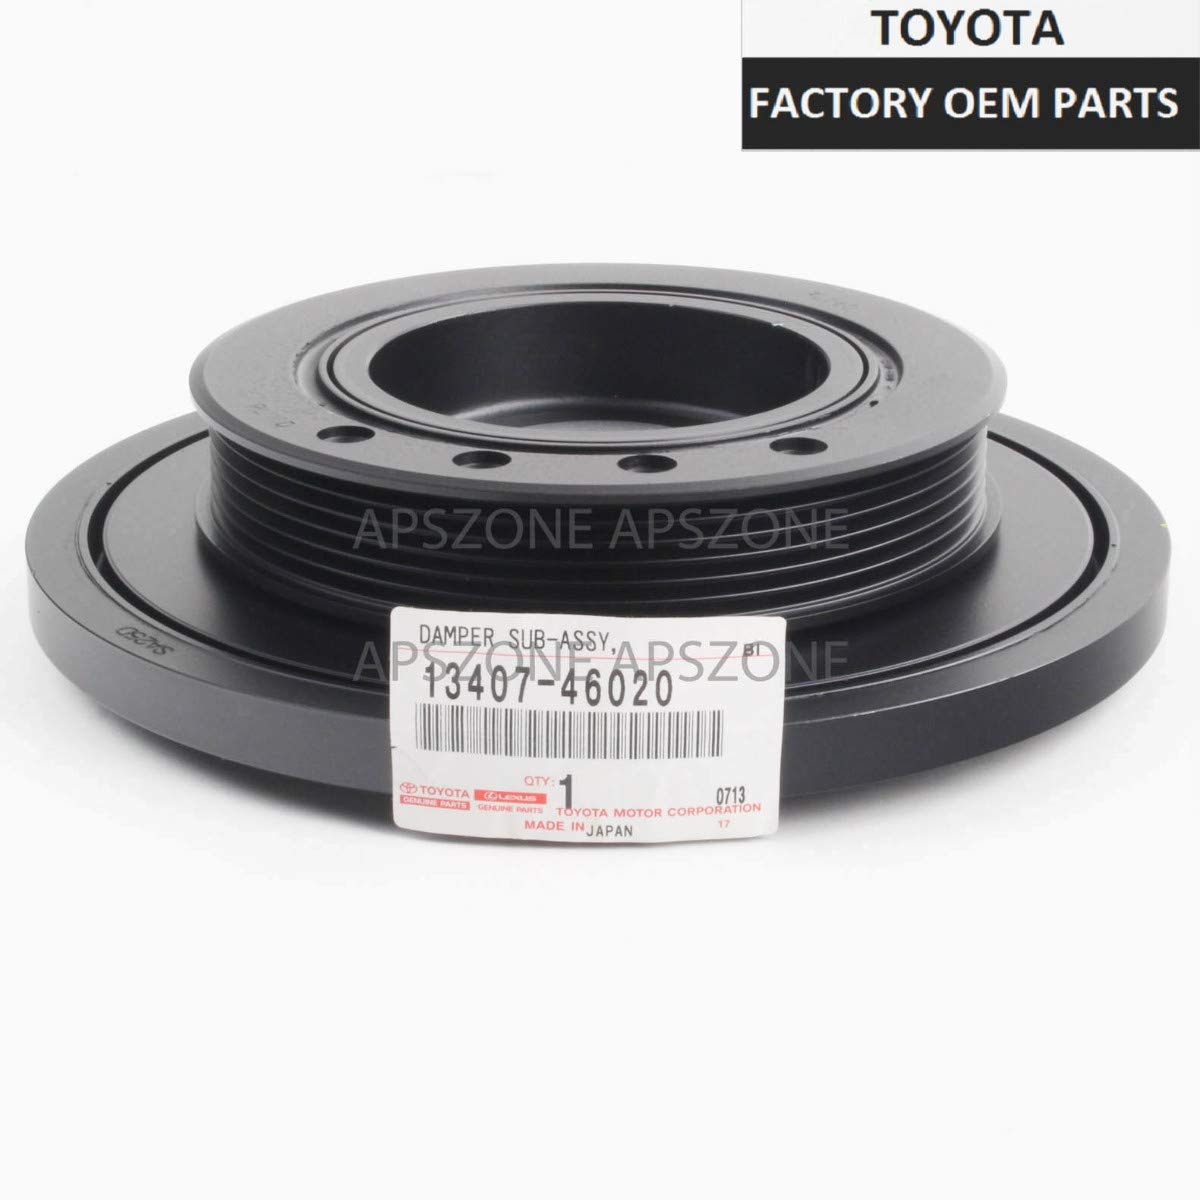 Lexus 13407-46020, Engine Crankshaft Pulley